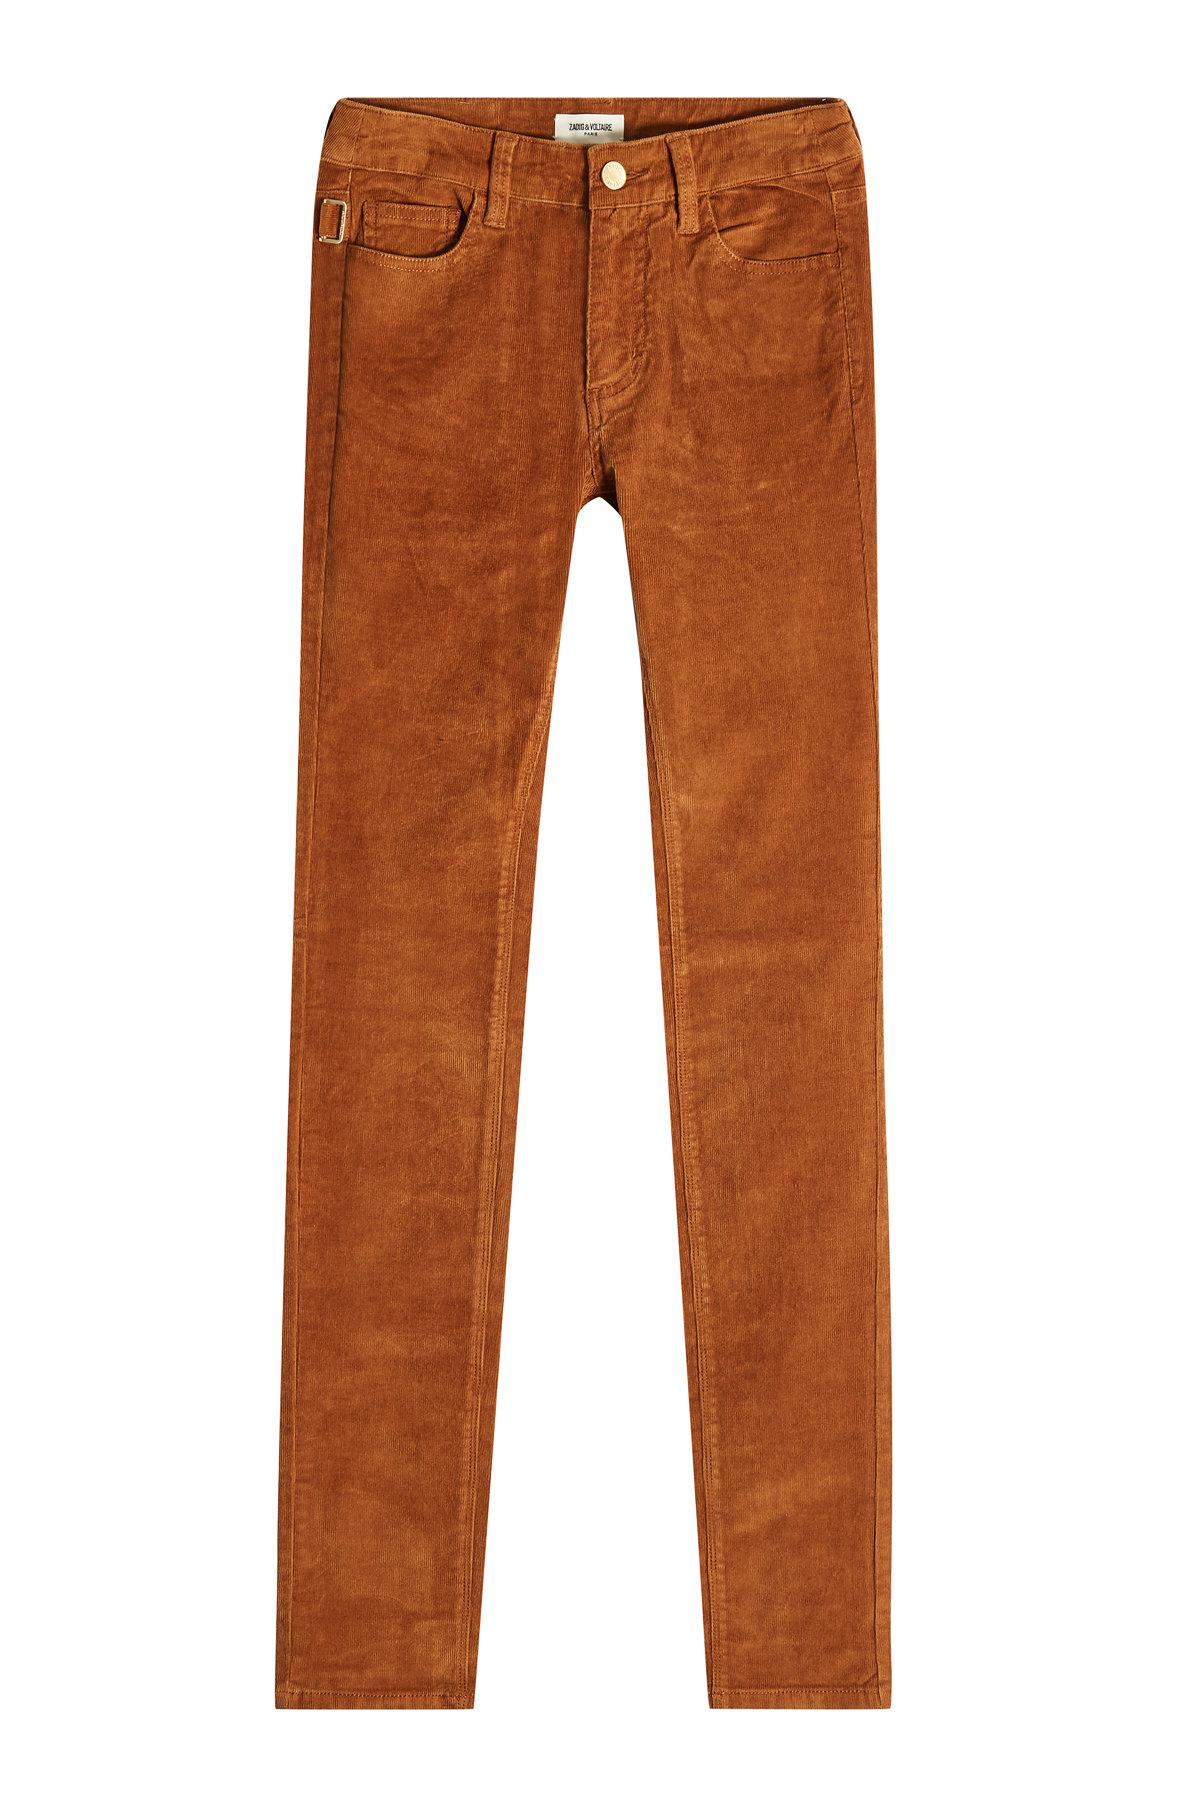 Zadig & Voltaire Corduroy Pants In Brown